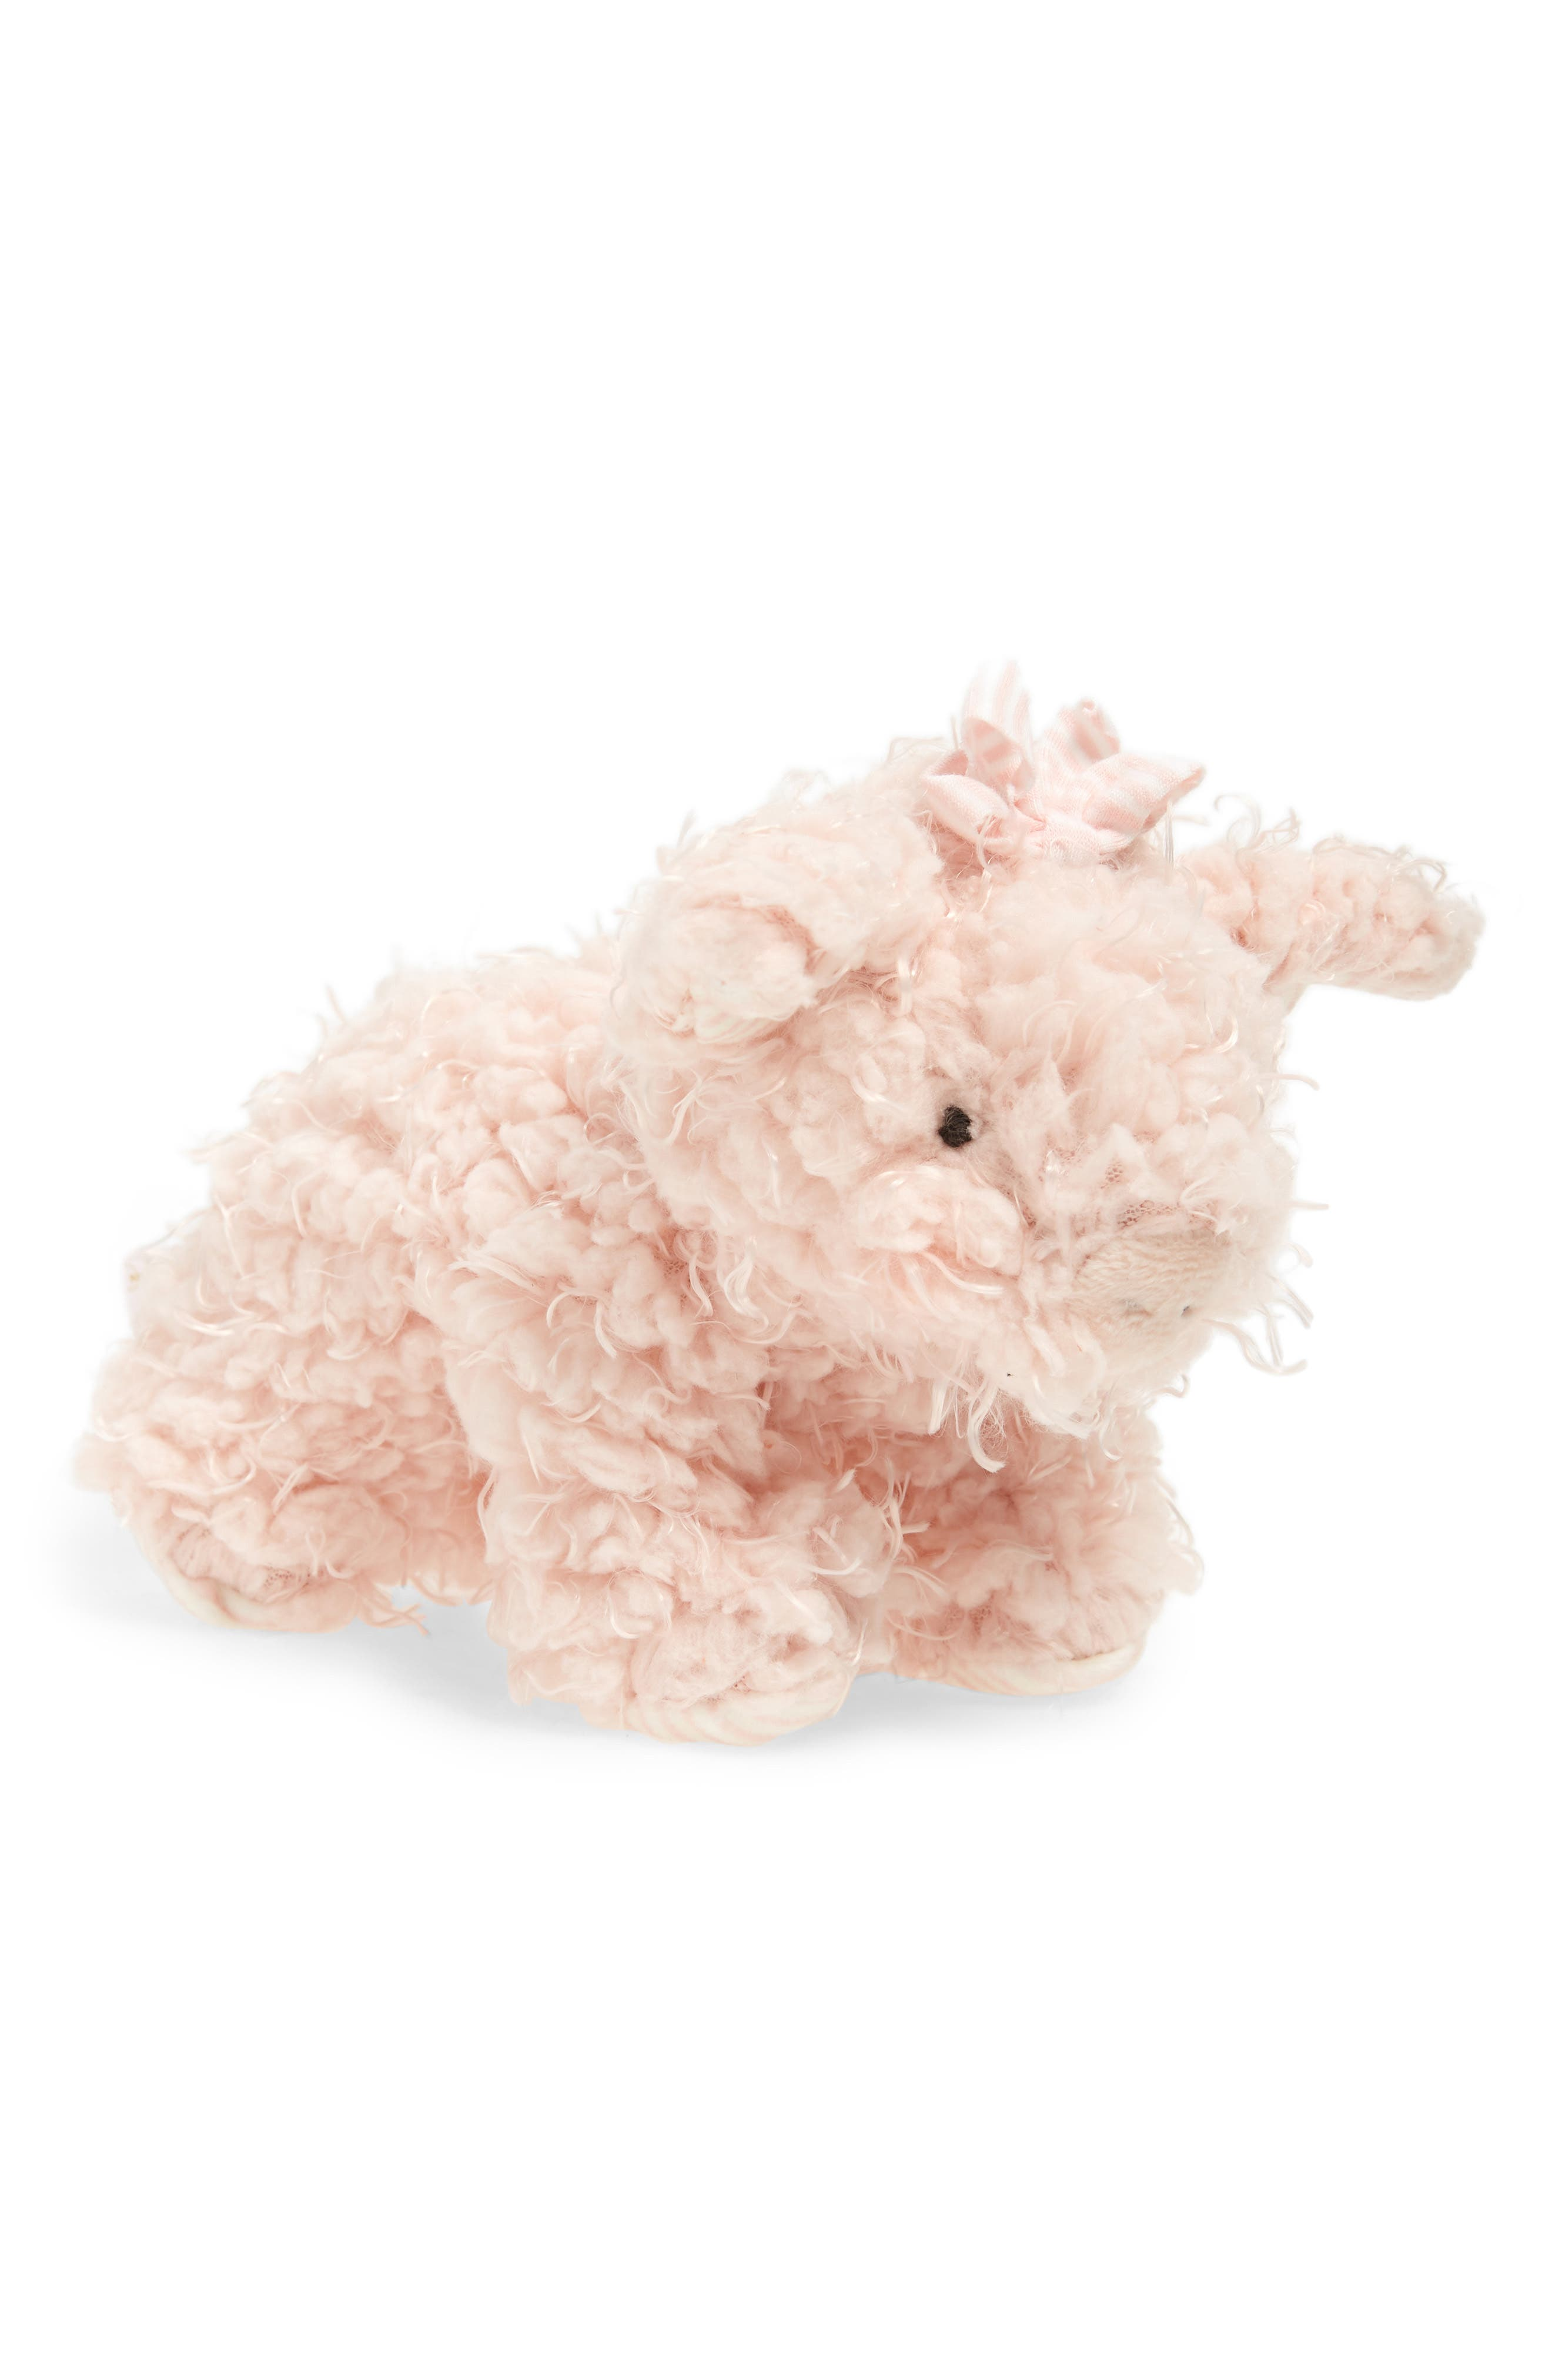 Alternate Image 1 Selected - Bunnies by the Bay Patty Pig Stuffed Animal